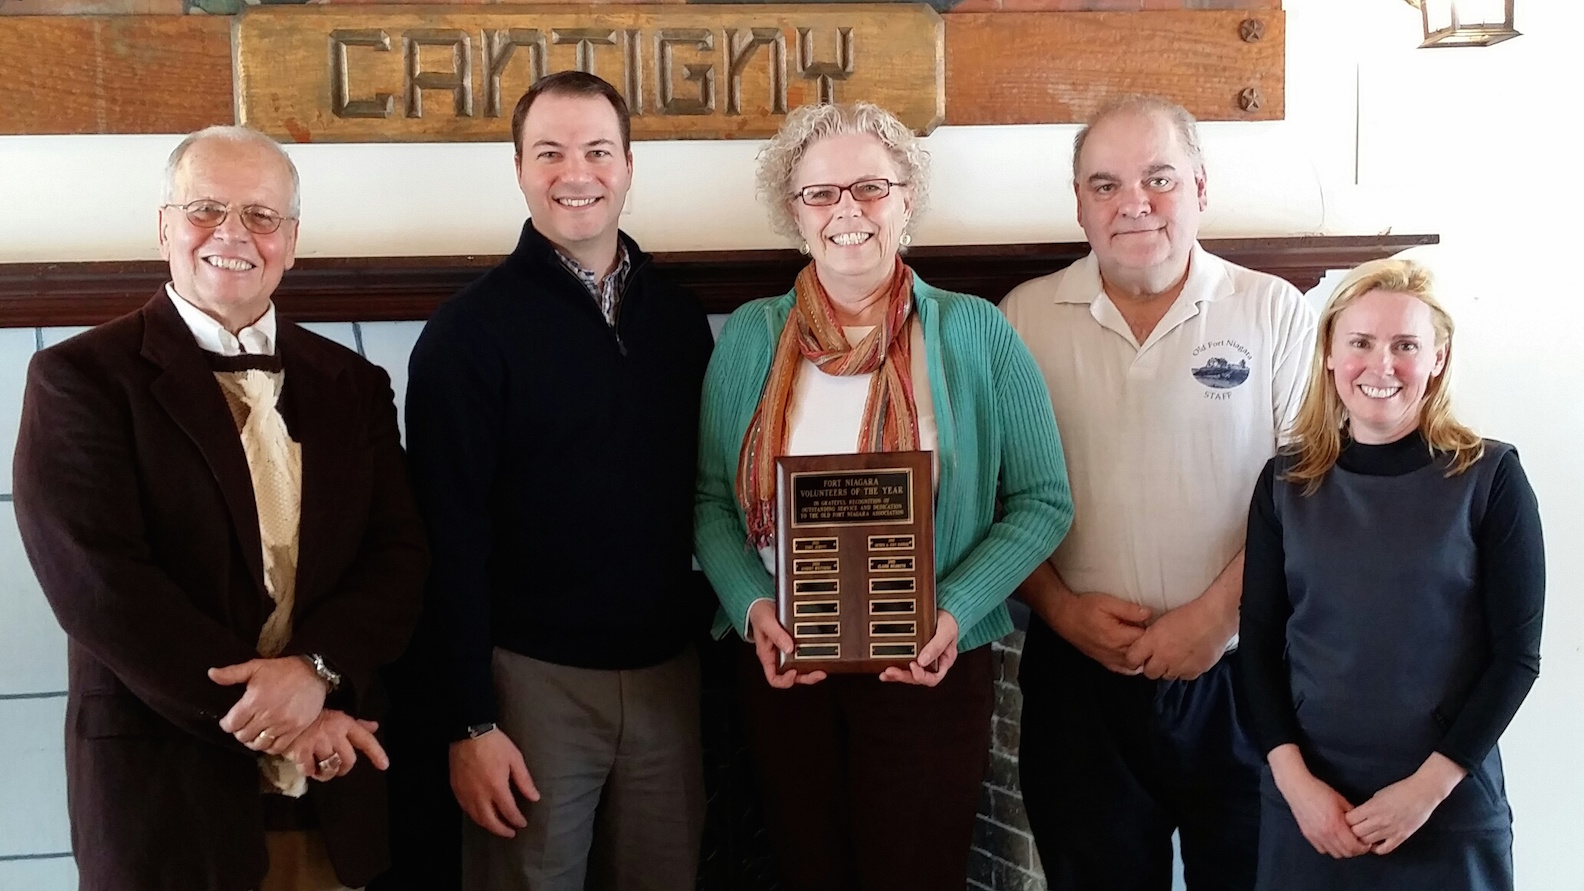 Elaine Hildreth of Youngstown, center, is Old Fort Niagara's 2014 Volunteer of the Year. She is pictured with Old Fort Niagara Association Vice President Bruce Newton, State Sen. Rob Ortt, Old Fort Niagara Executive Director Robert Emerson and Volunteer Coordinator Genevieve Montante. Click for a larger image.